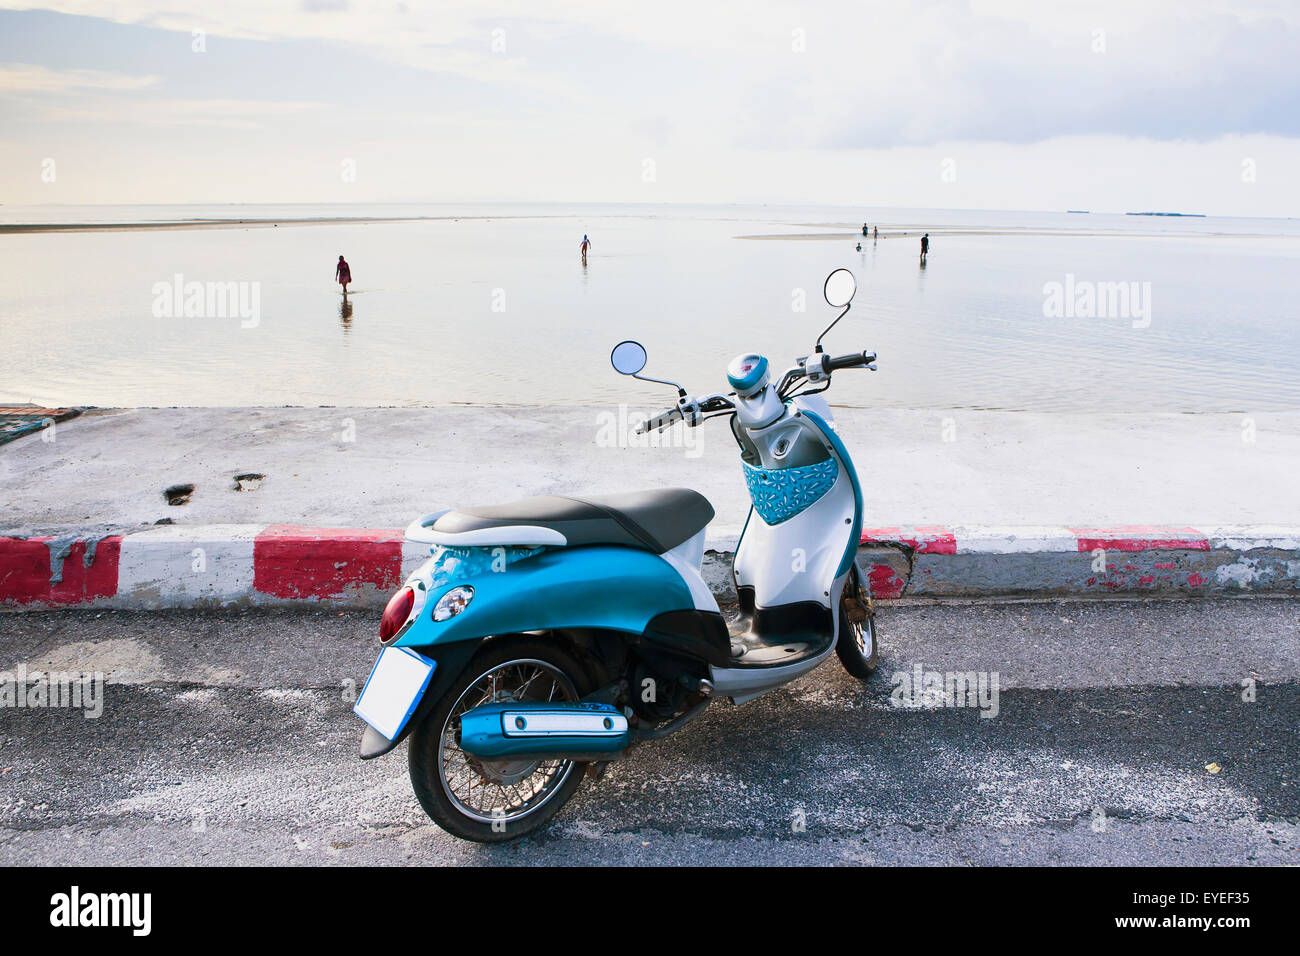 Thailand Scooter Tourist Stock Photos & Thailand Scooter Tourist